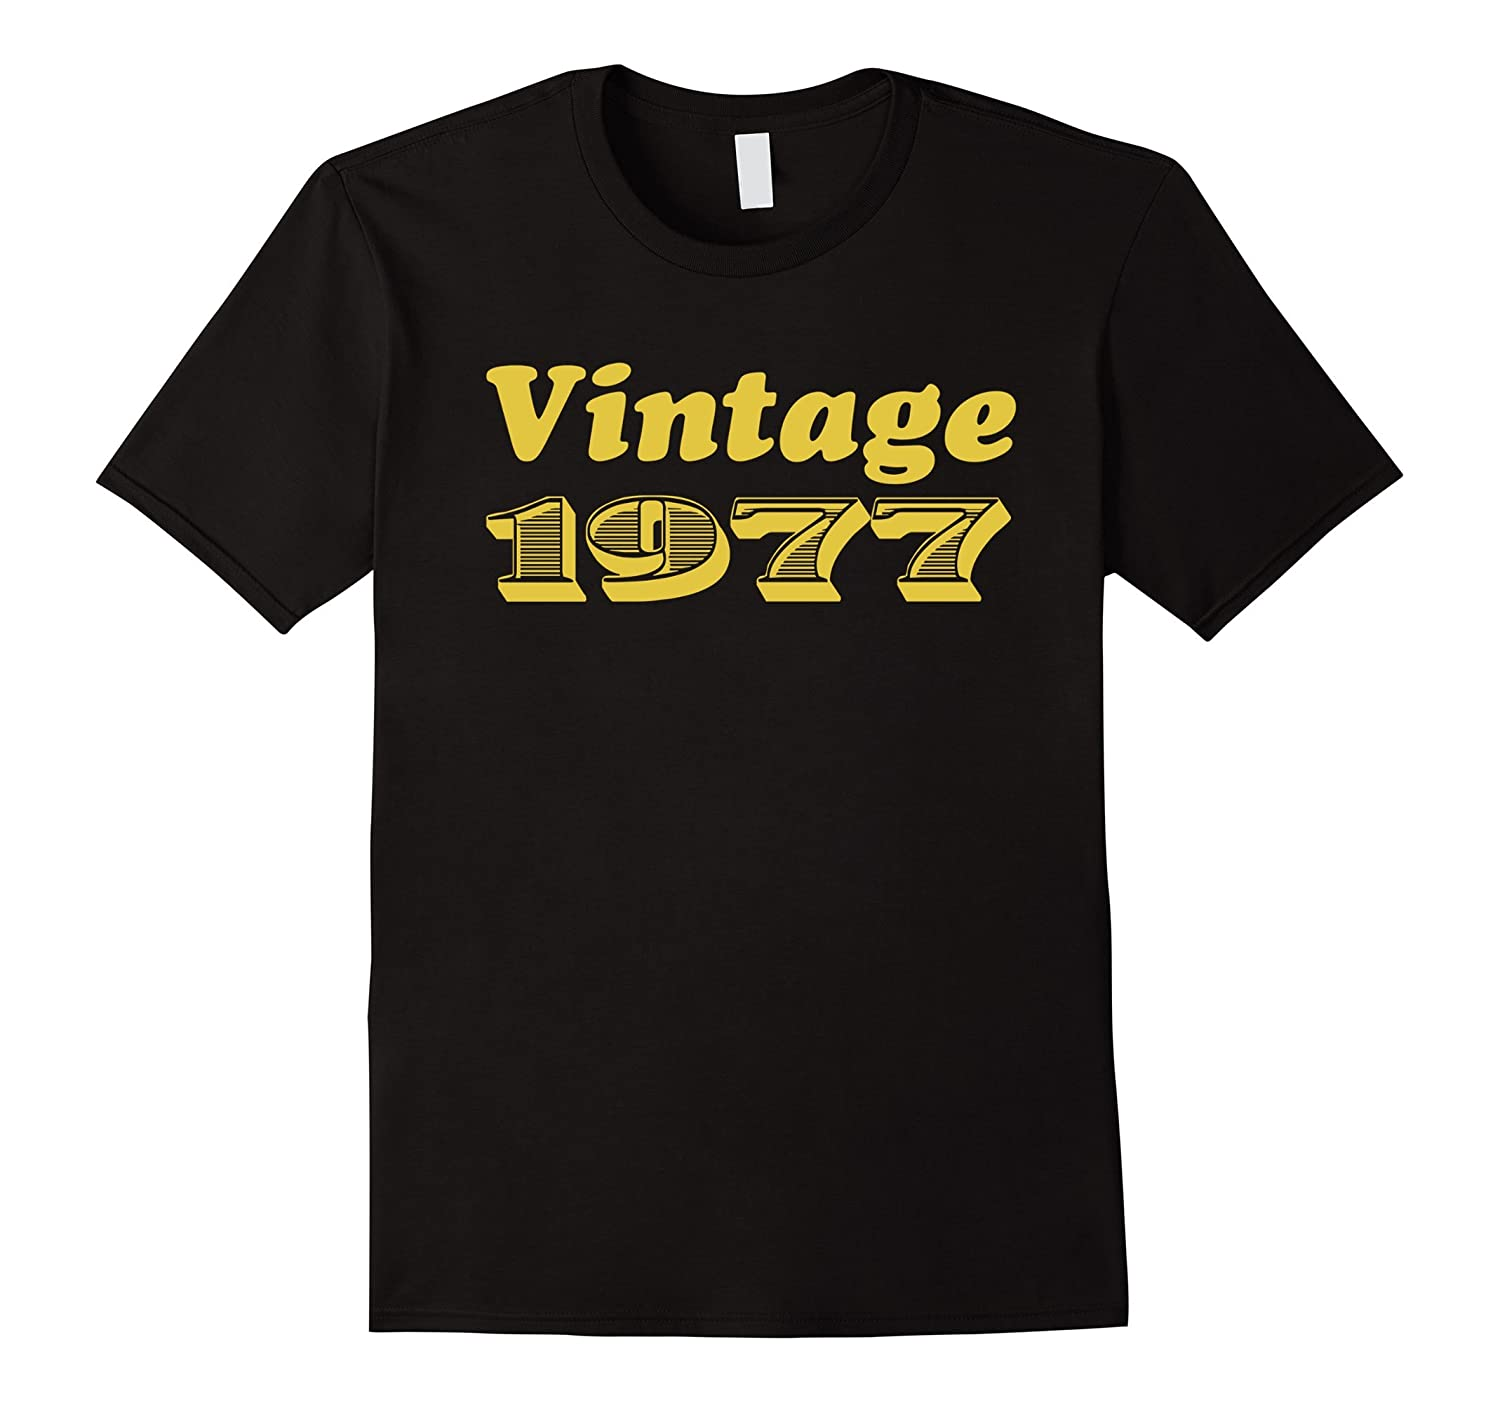 Great 40th Birthday Gift Ideas Vintage 1977 T Shirt CL